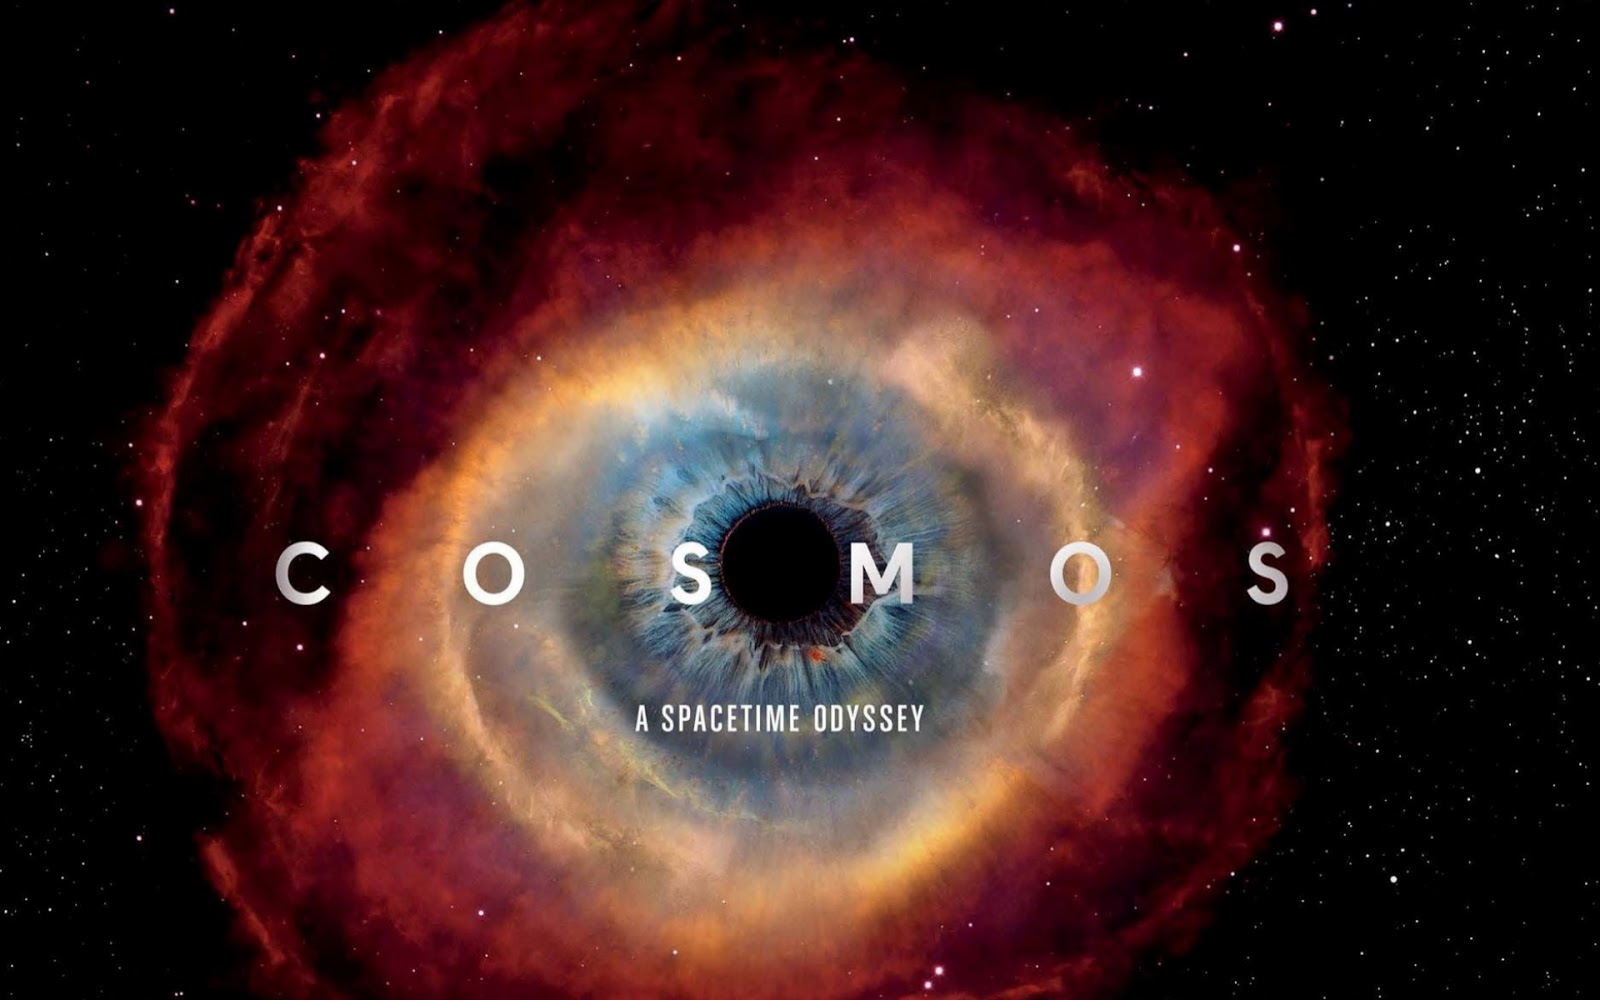 cosmos_a_spacetime_odyssey-1920x1200